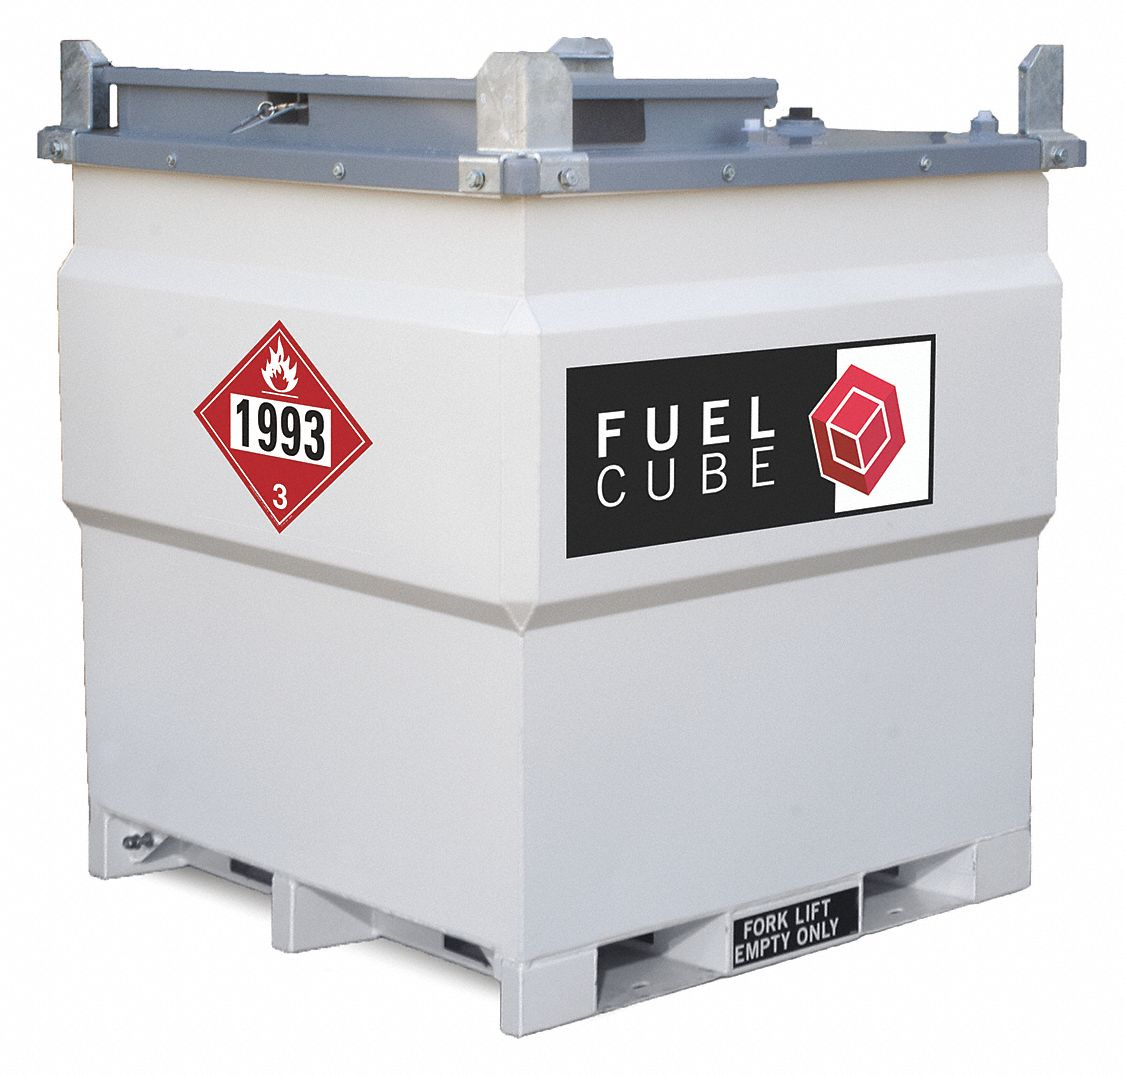 White Square Diesel Fuel Tank, 250 gal Capacity, 11 Gauge Steel